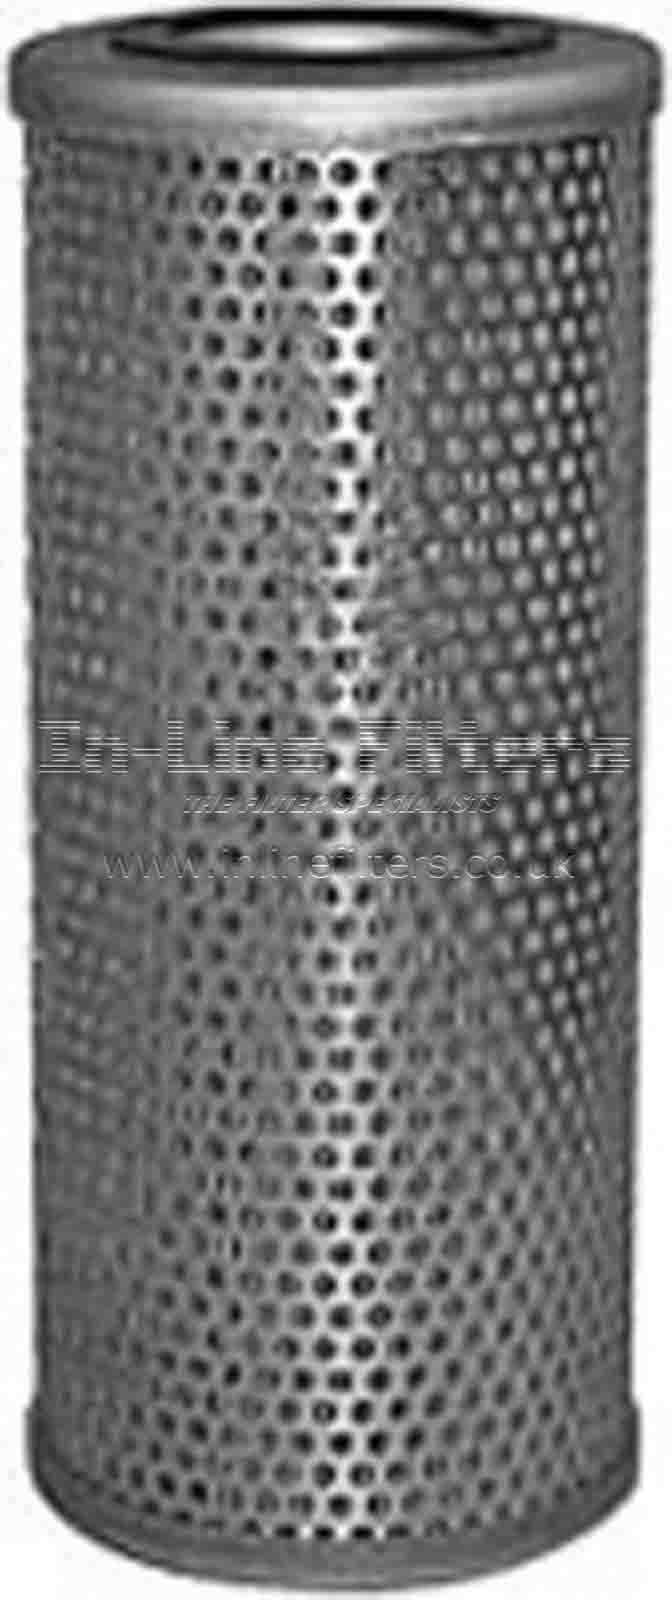 FBW-PT9152 FILTER-Hydraulic(Brand Specific-Baldwin PT9152) - Click Image to Close